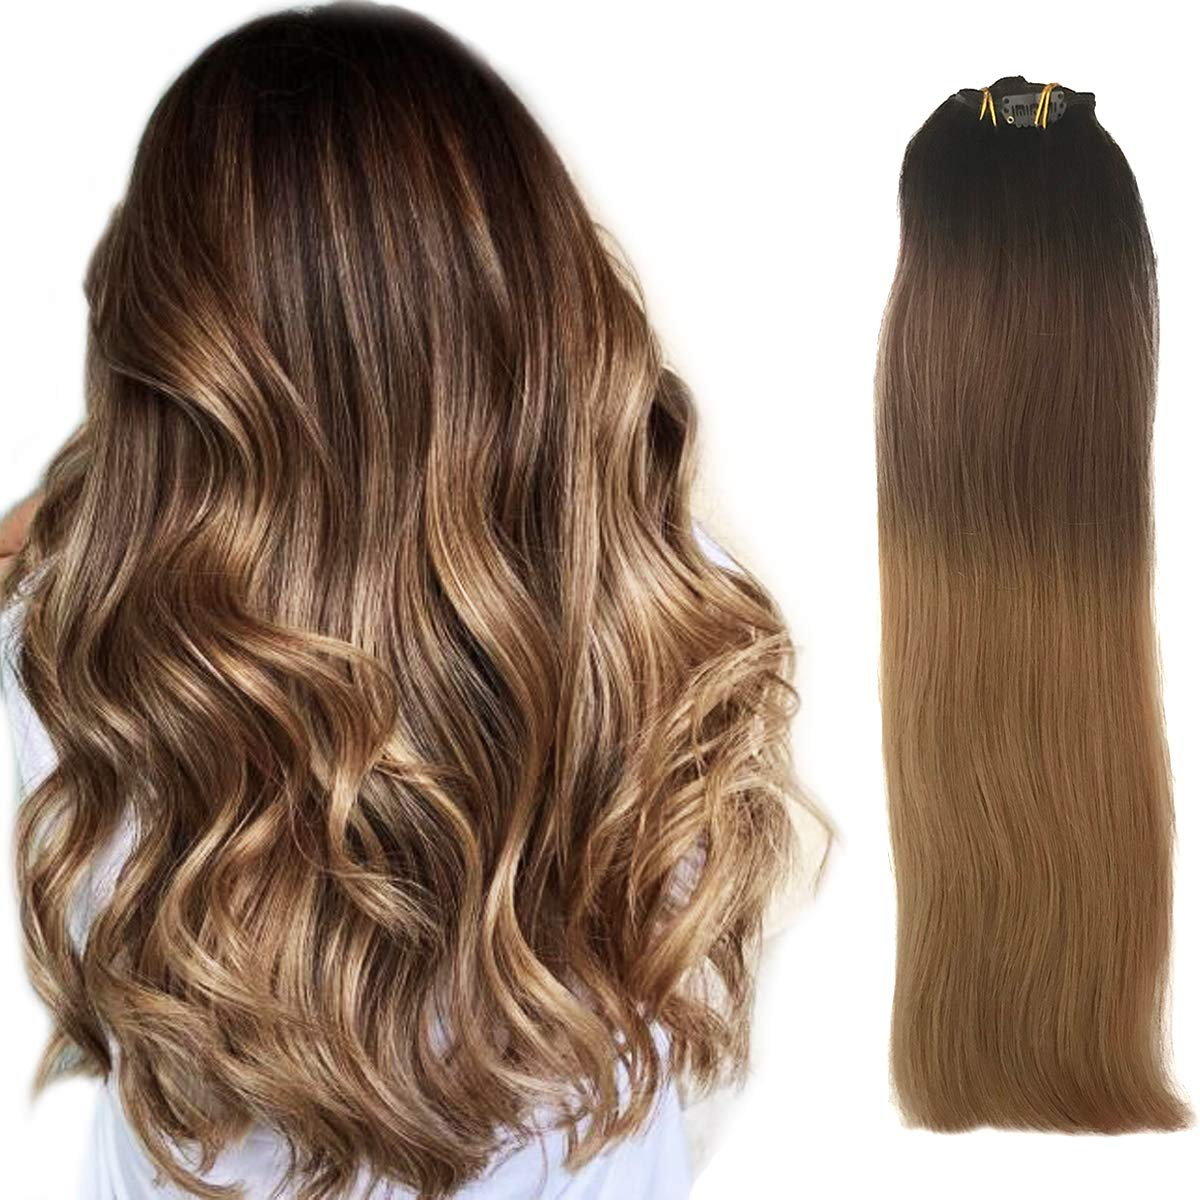 """Clip in Hair Extensions Dark Brown to Chestnut with Ash Brown Highlighted Balayage Ombre Hair Clip on 7Pcs 120G Straight Thick Human Hair Clip in Real Extensions Full Head Double Weft for Women 22"""""""